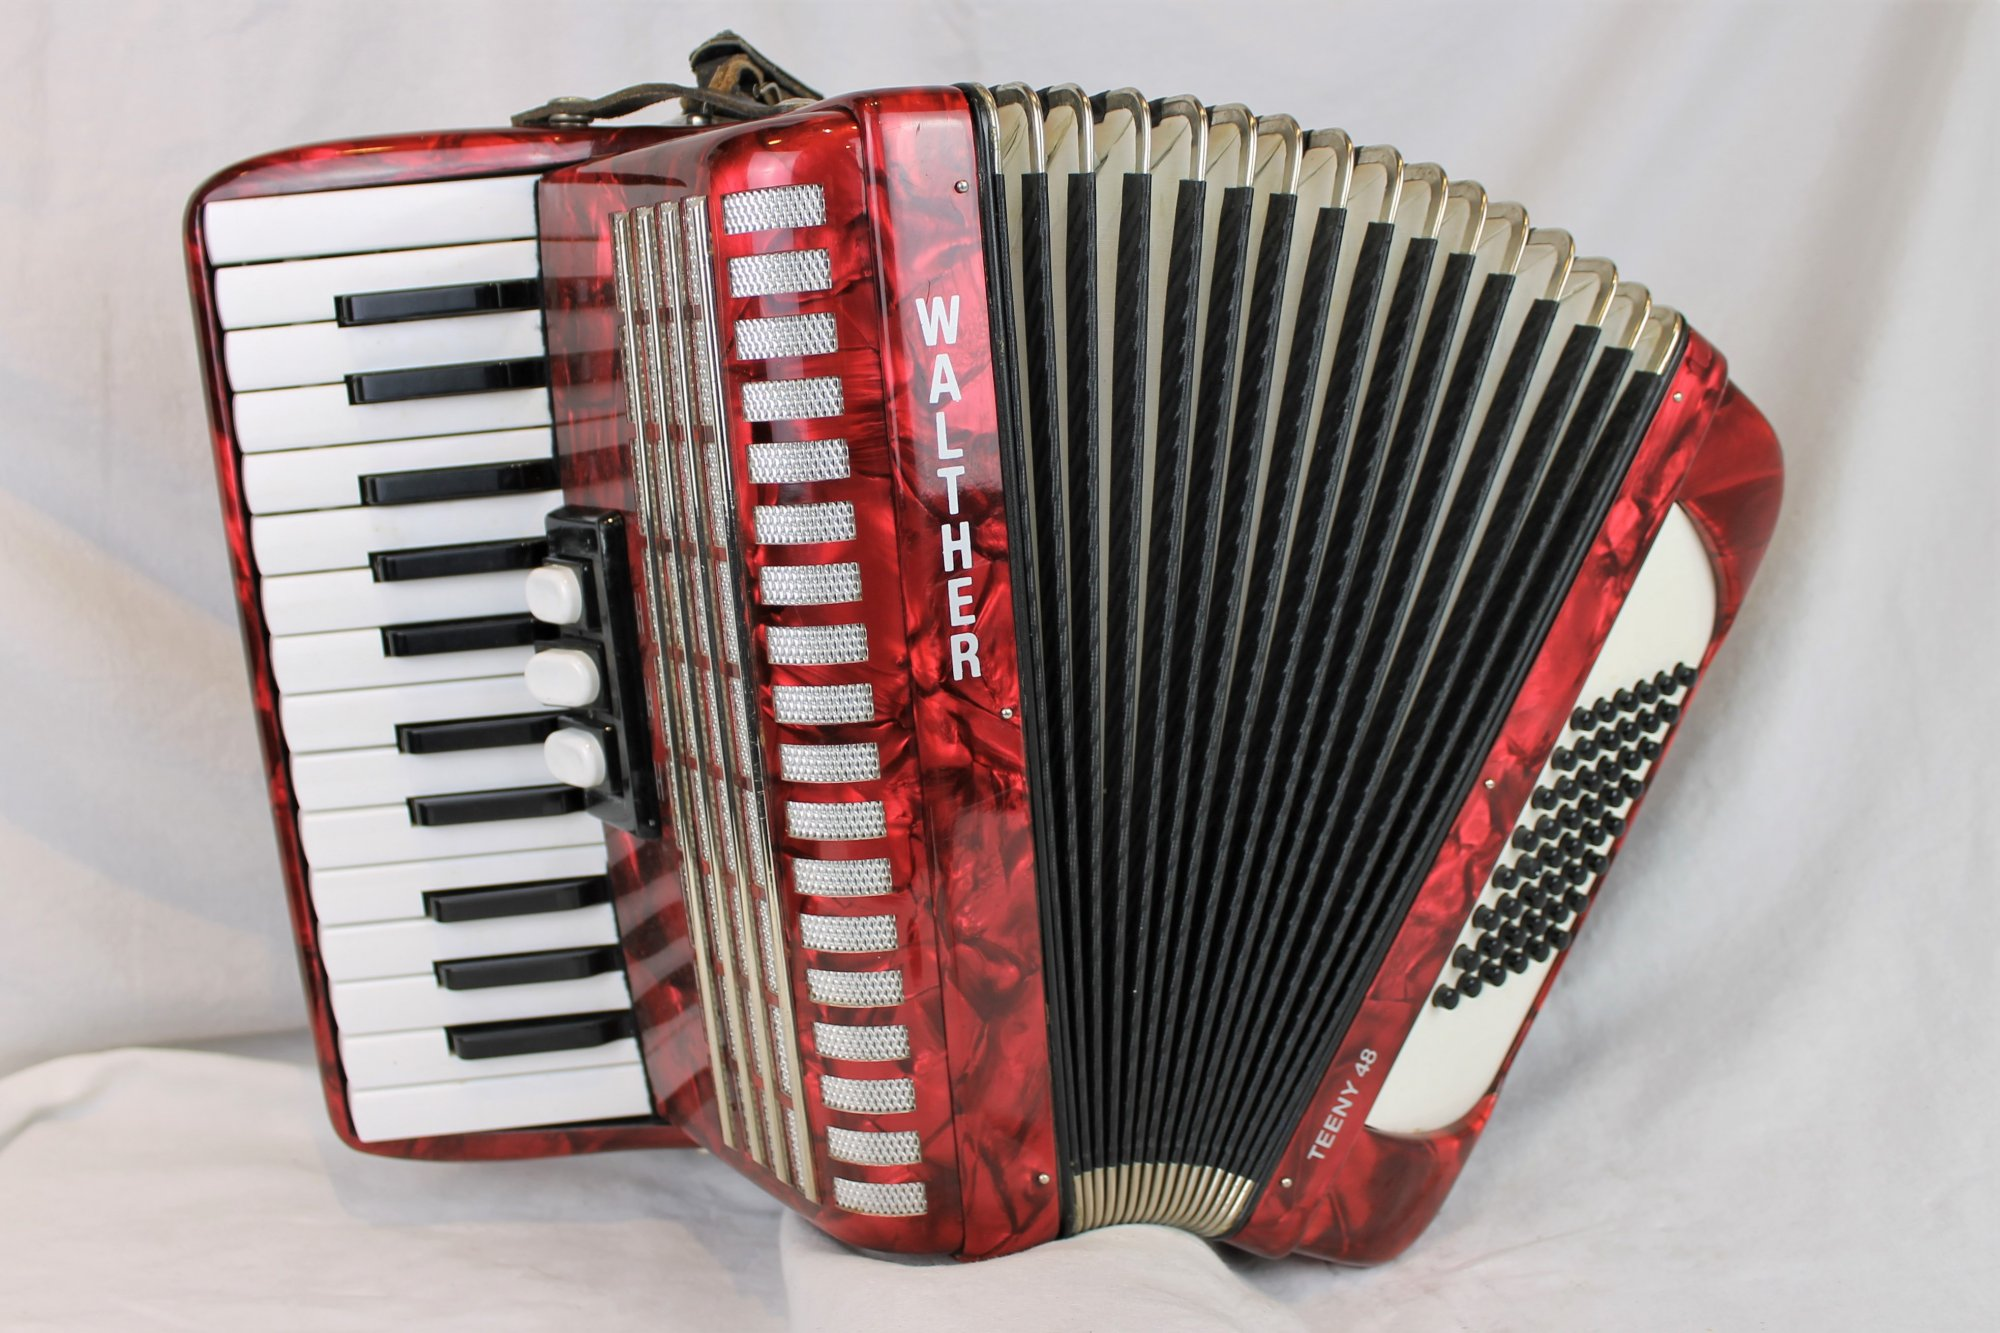 4728 - Red Walther Teeny 48 Weltmeister Perle Piano Accordion MM 26 48